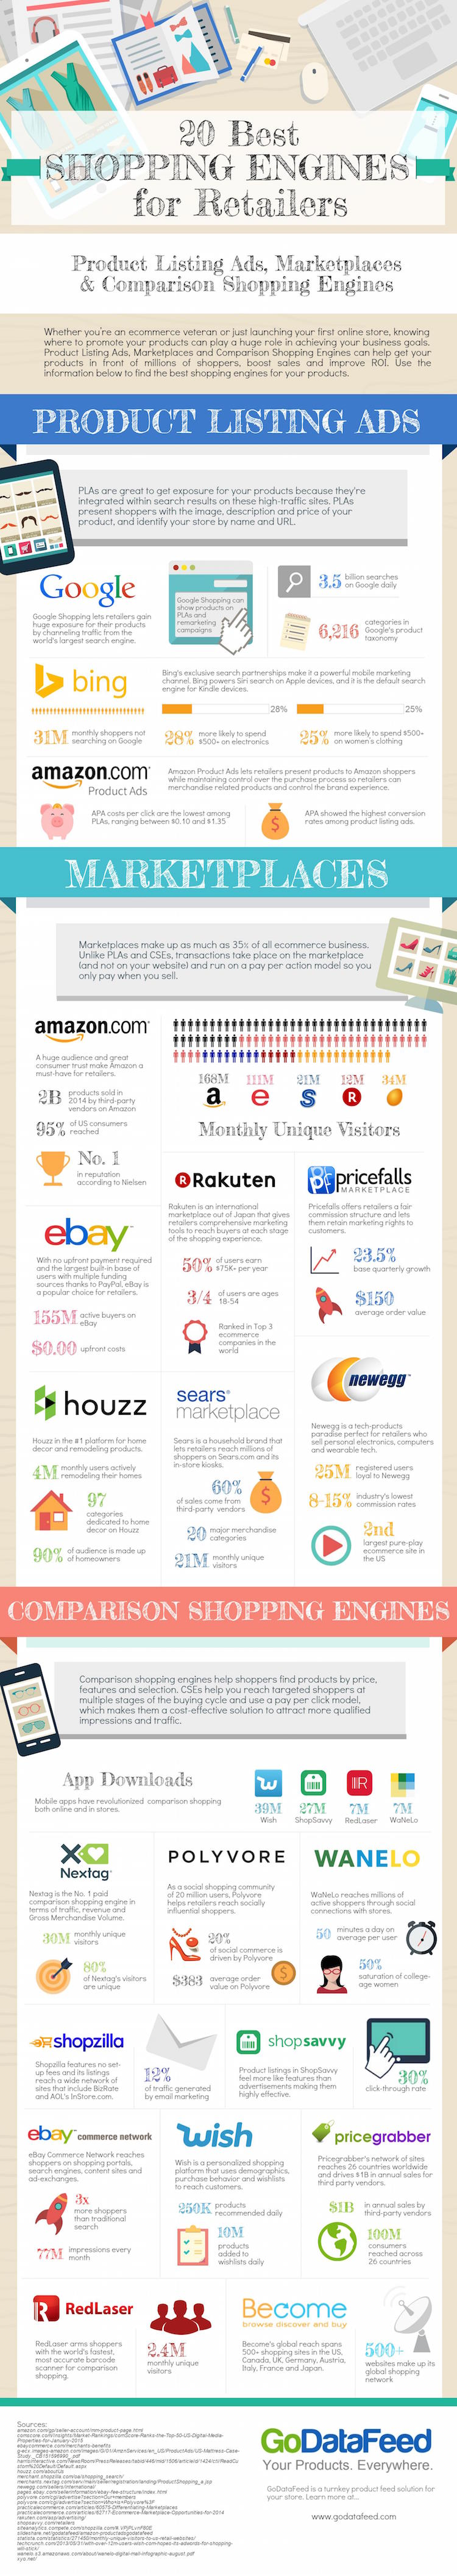 comparison shopping search engines